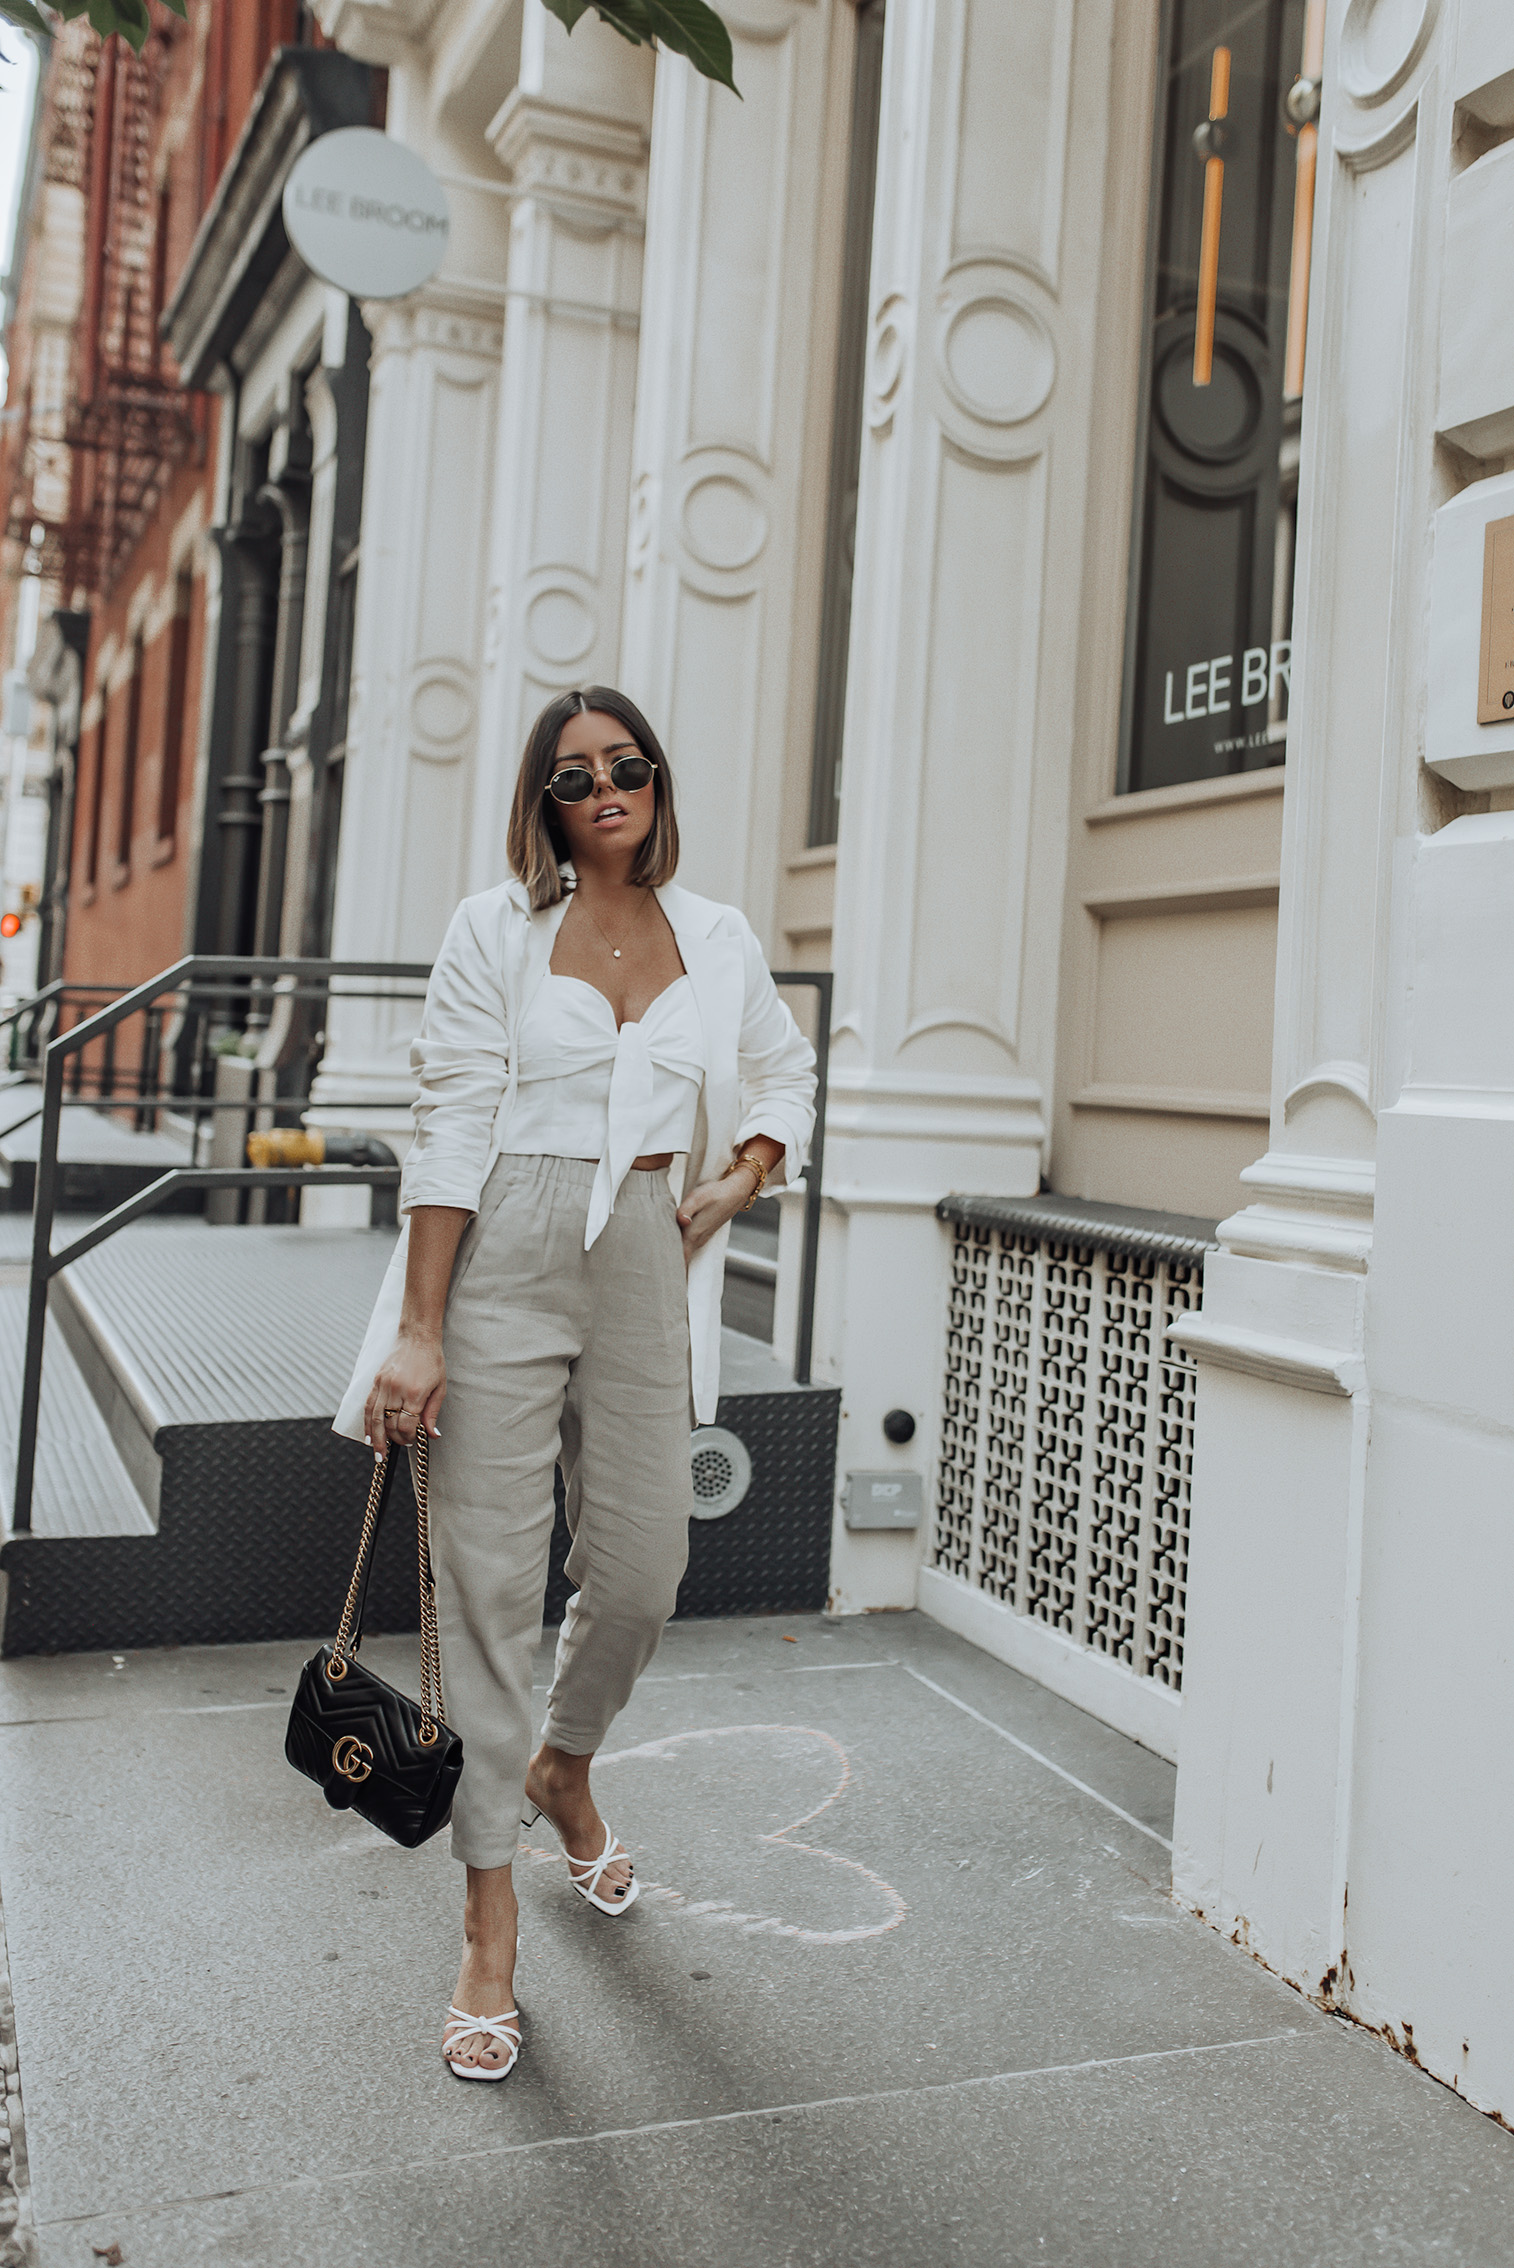 Linen top (Similar) | Linen pant (Aritzia) | Heels (Verge Girl) | Gucci Bag | Linen Blazer  Wearing head to toe linen! Well maybe not to my toes but you get the effect I was going for here. Hehe! It's been super hot in NYC and the only way I've been fashionably surviving the heat is by wearing super light weight clothing. Not to mention the humidity has been through the roof. #streetstyle #ootd #rewardstyle #linenpant #aritzia